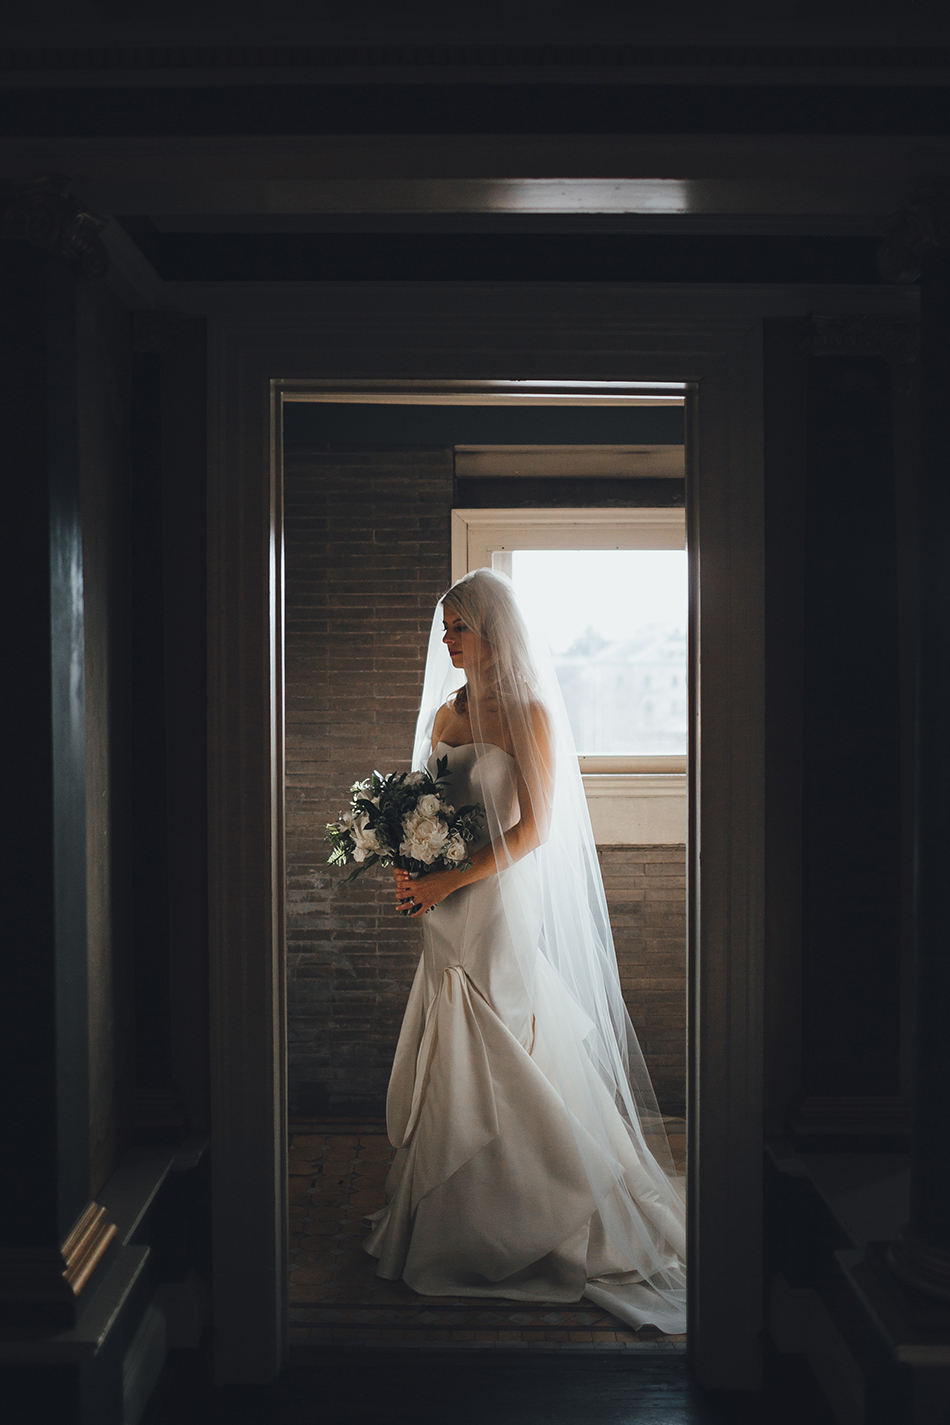 annamaier_realbride_minneapolis09.jpg